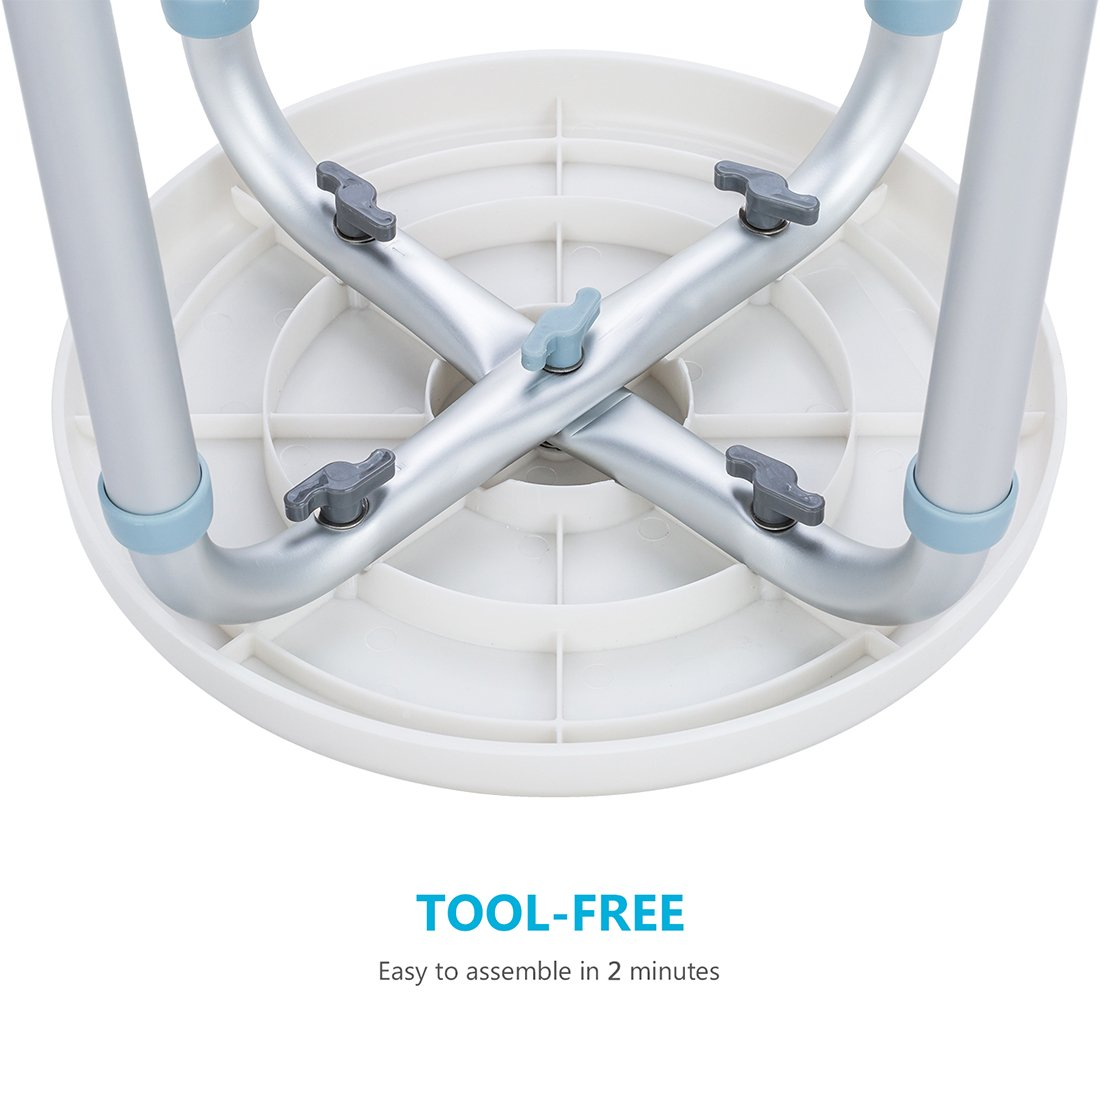 OasisSpace 360 Degree Rotating Shower Chair, Tool Free Adjustable ...